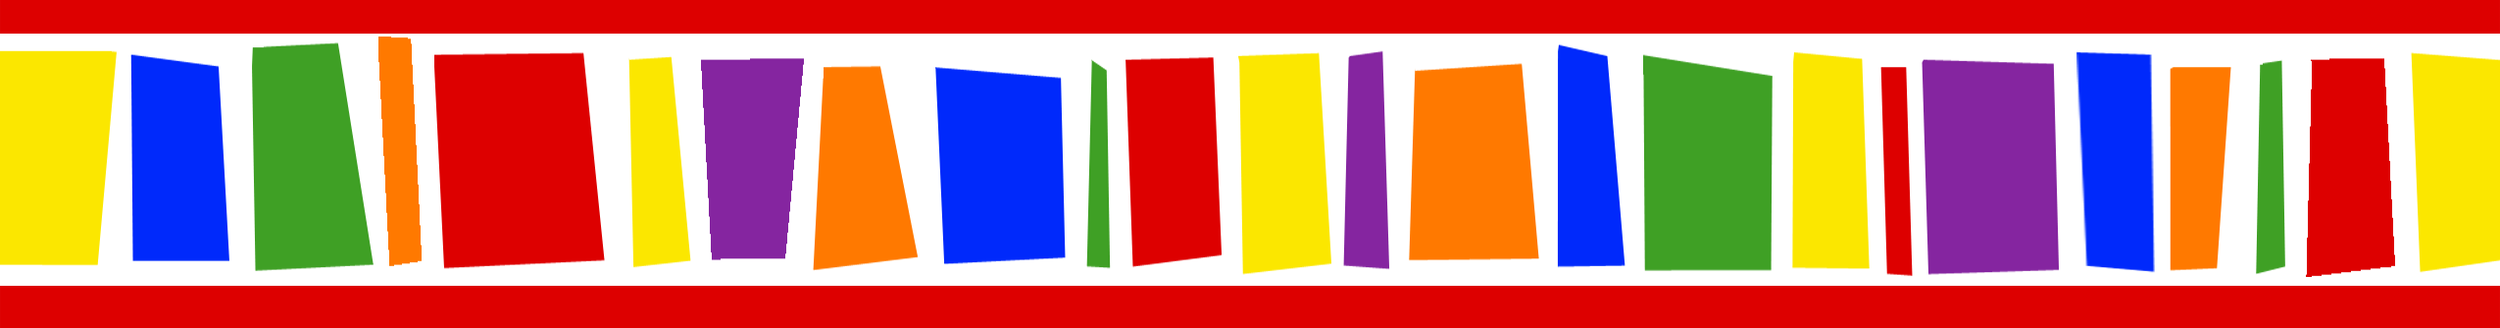 MulticolorBars.png